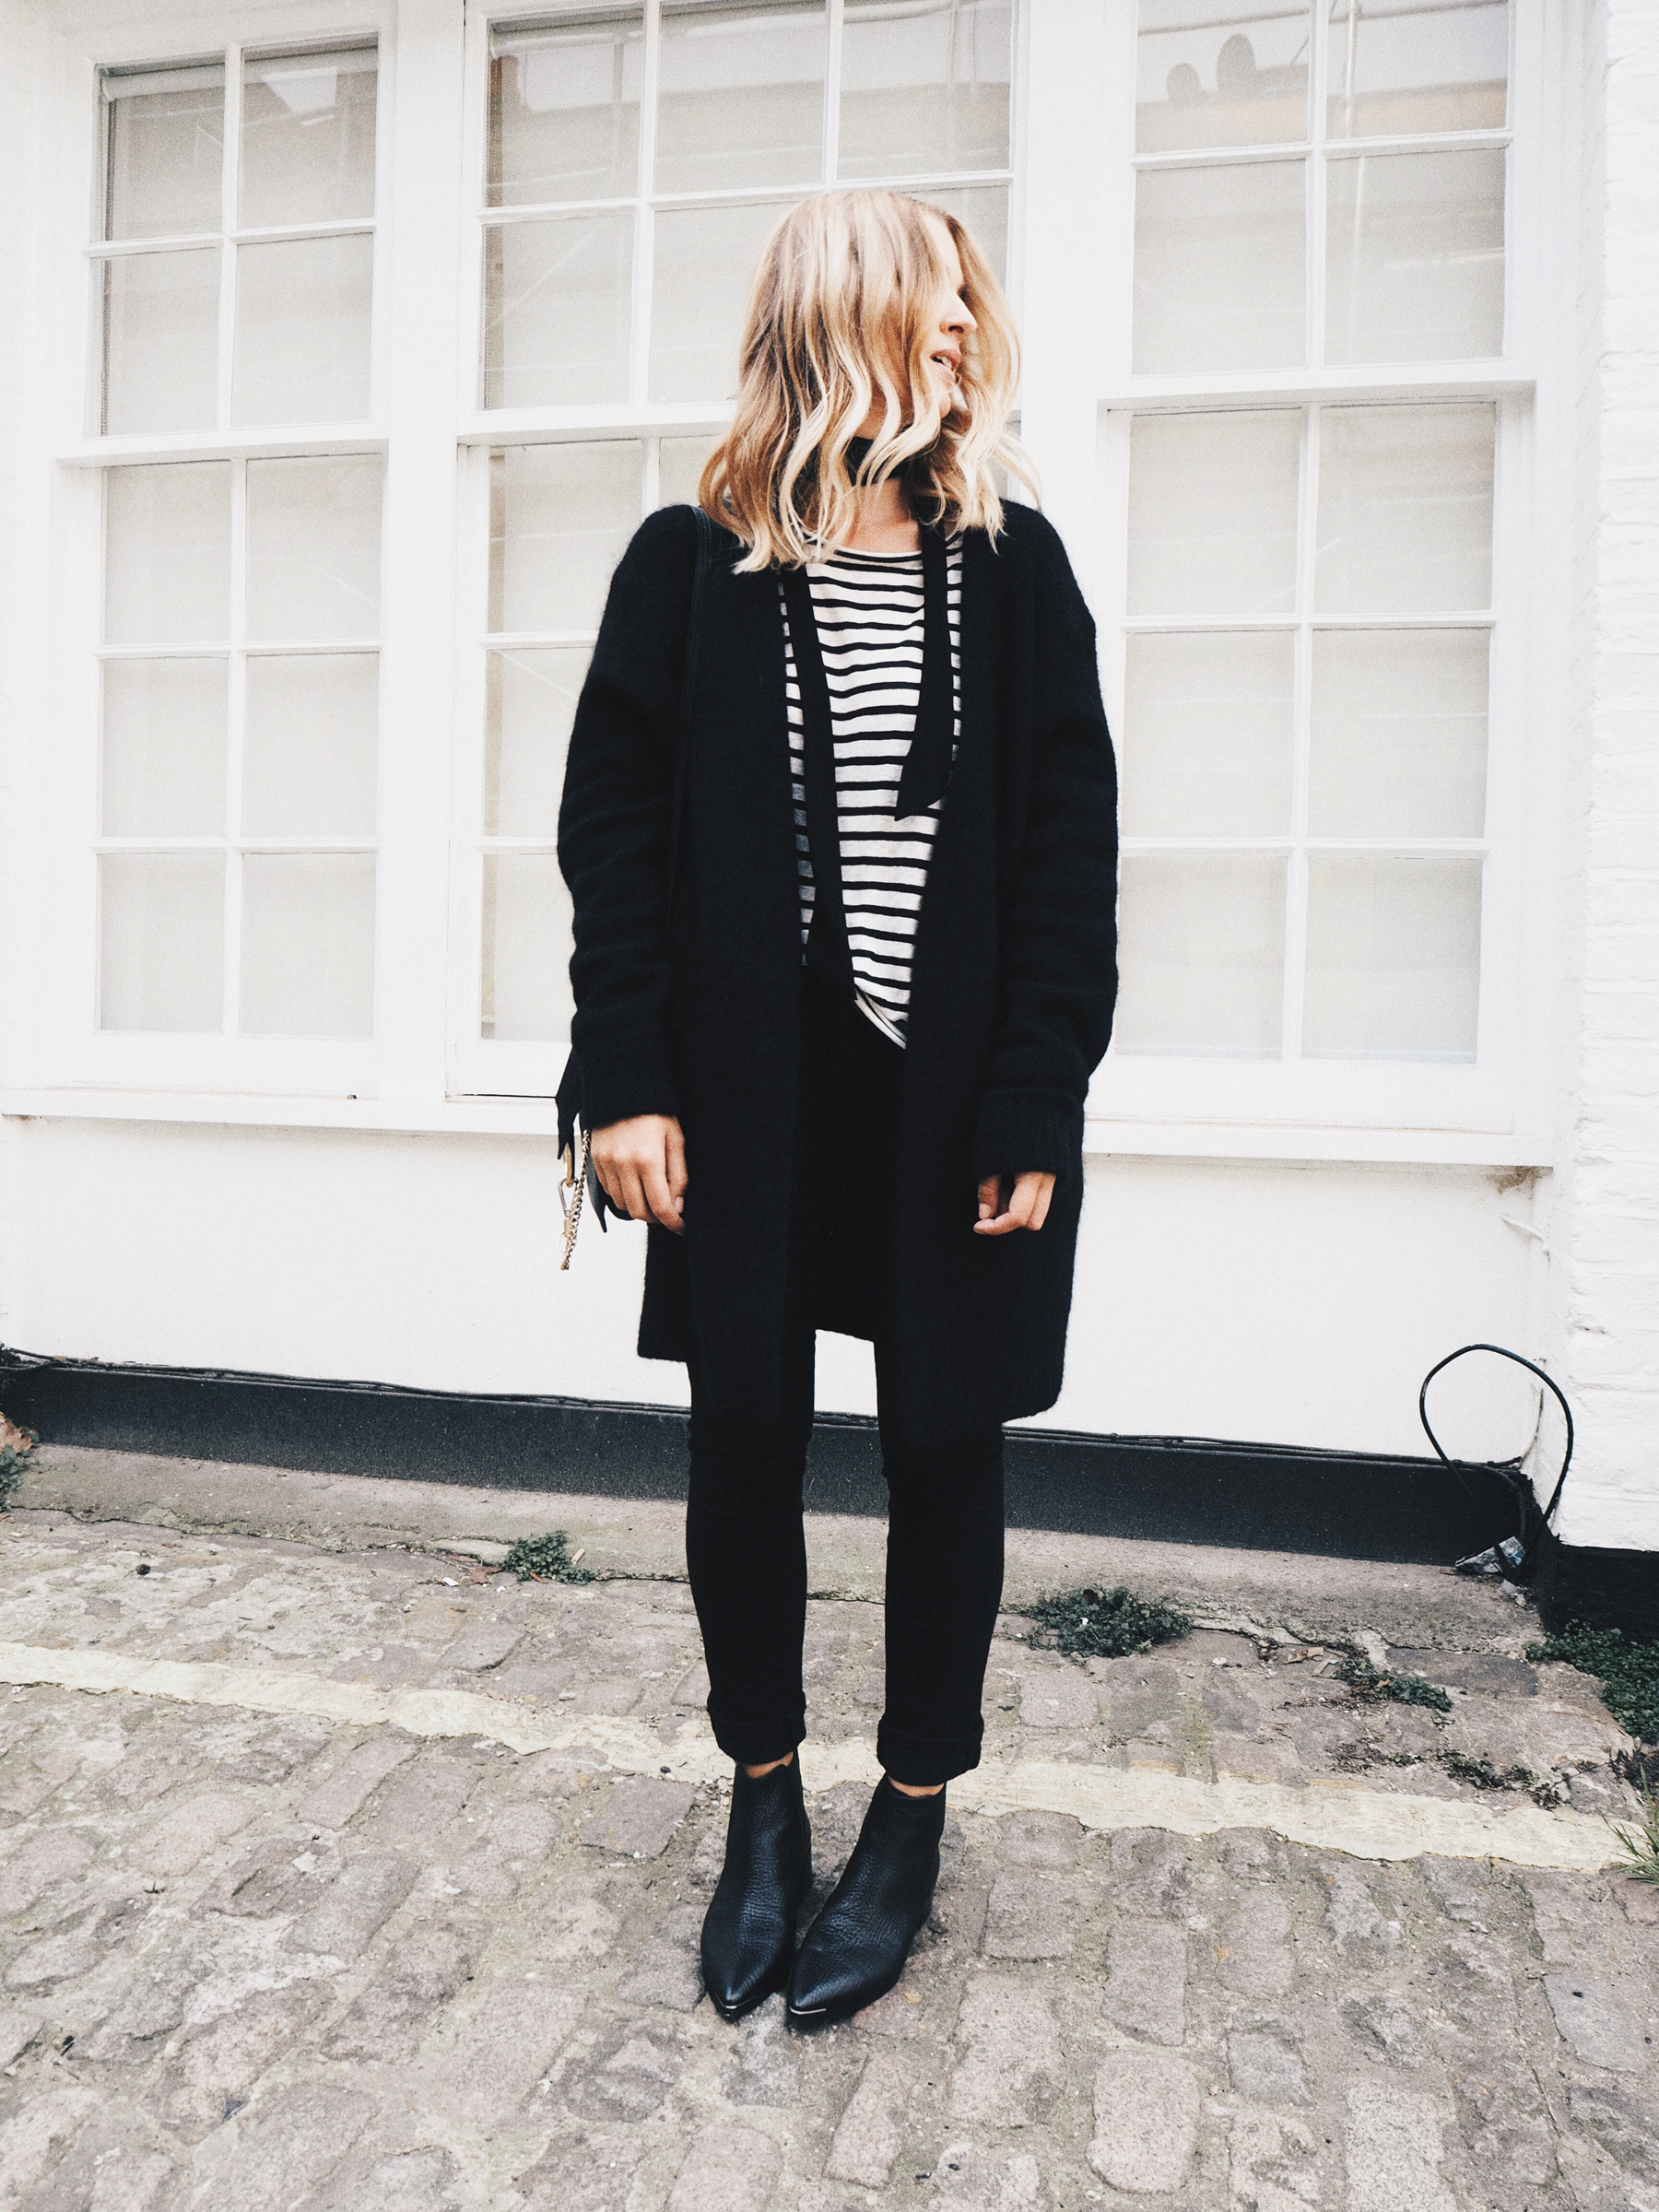 Mirjam Flatau rocks monochrome in this striped top and skinny black scarf. Bag/Scarf: Chloe, Cardigan: ACNE Studios.